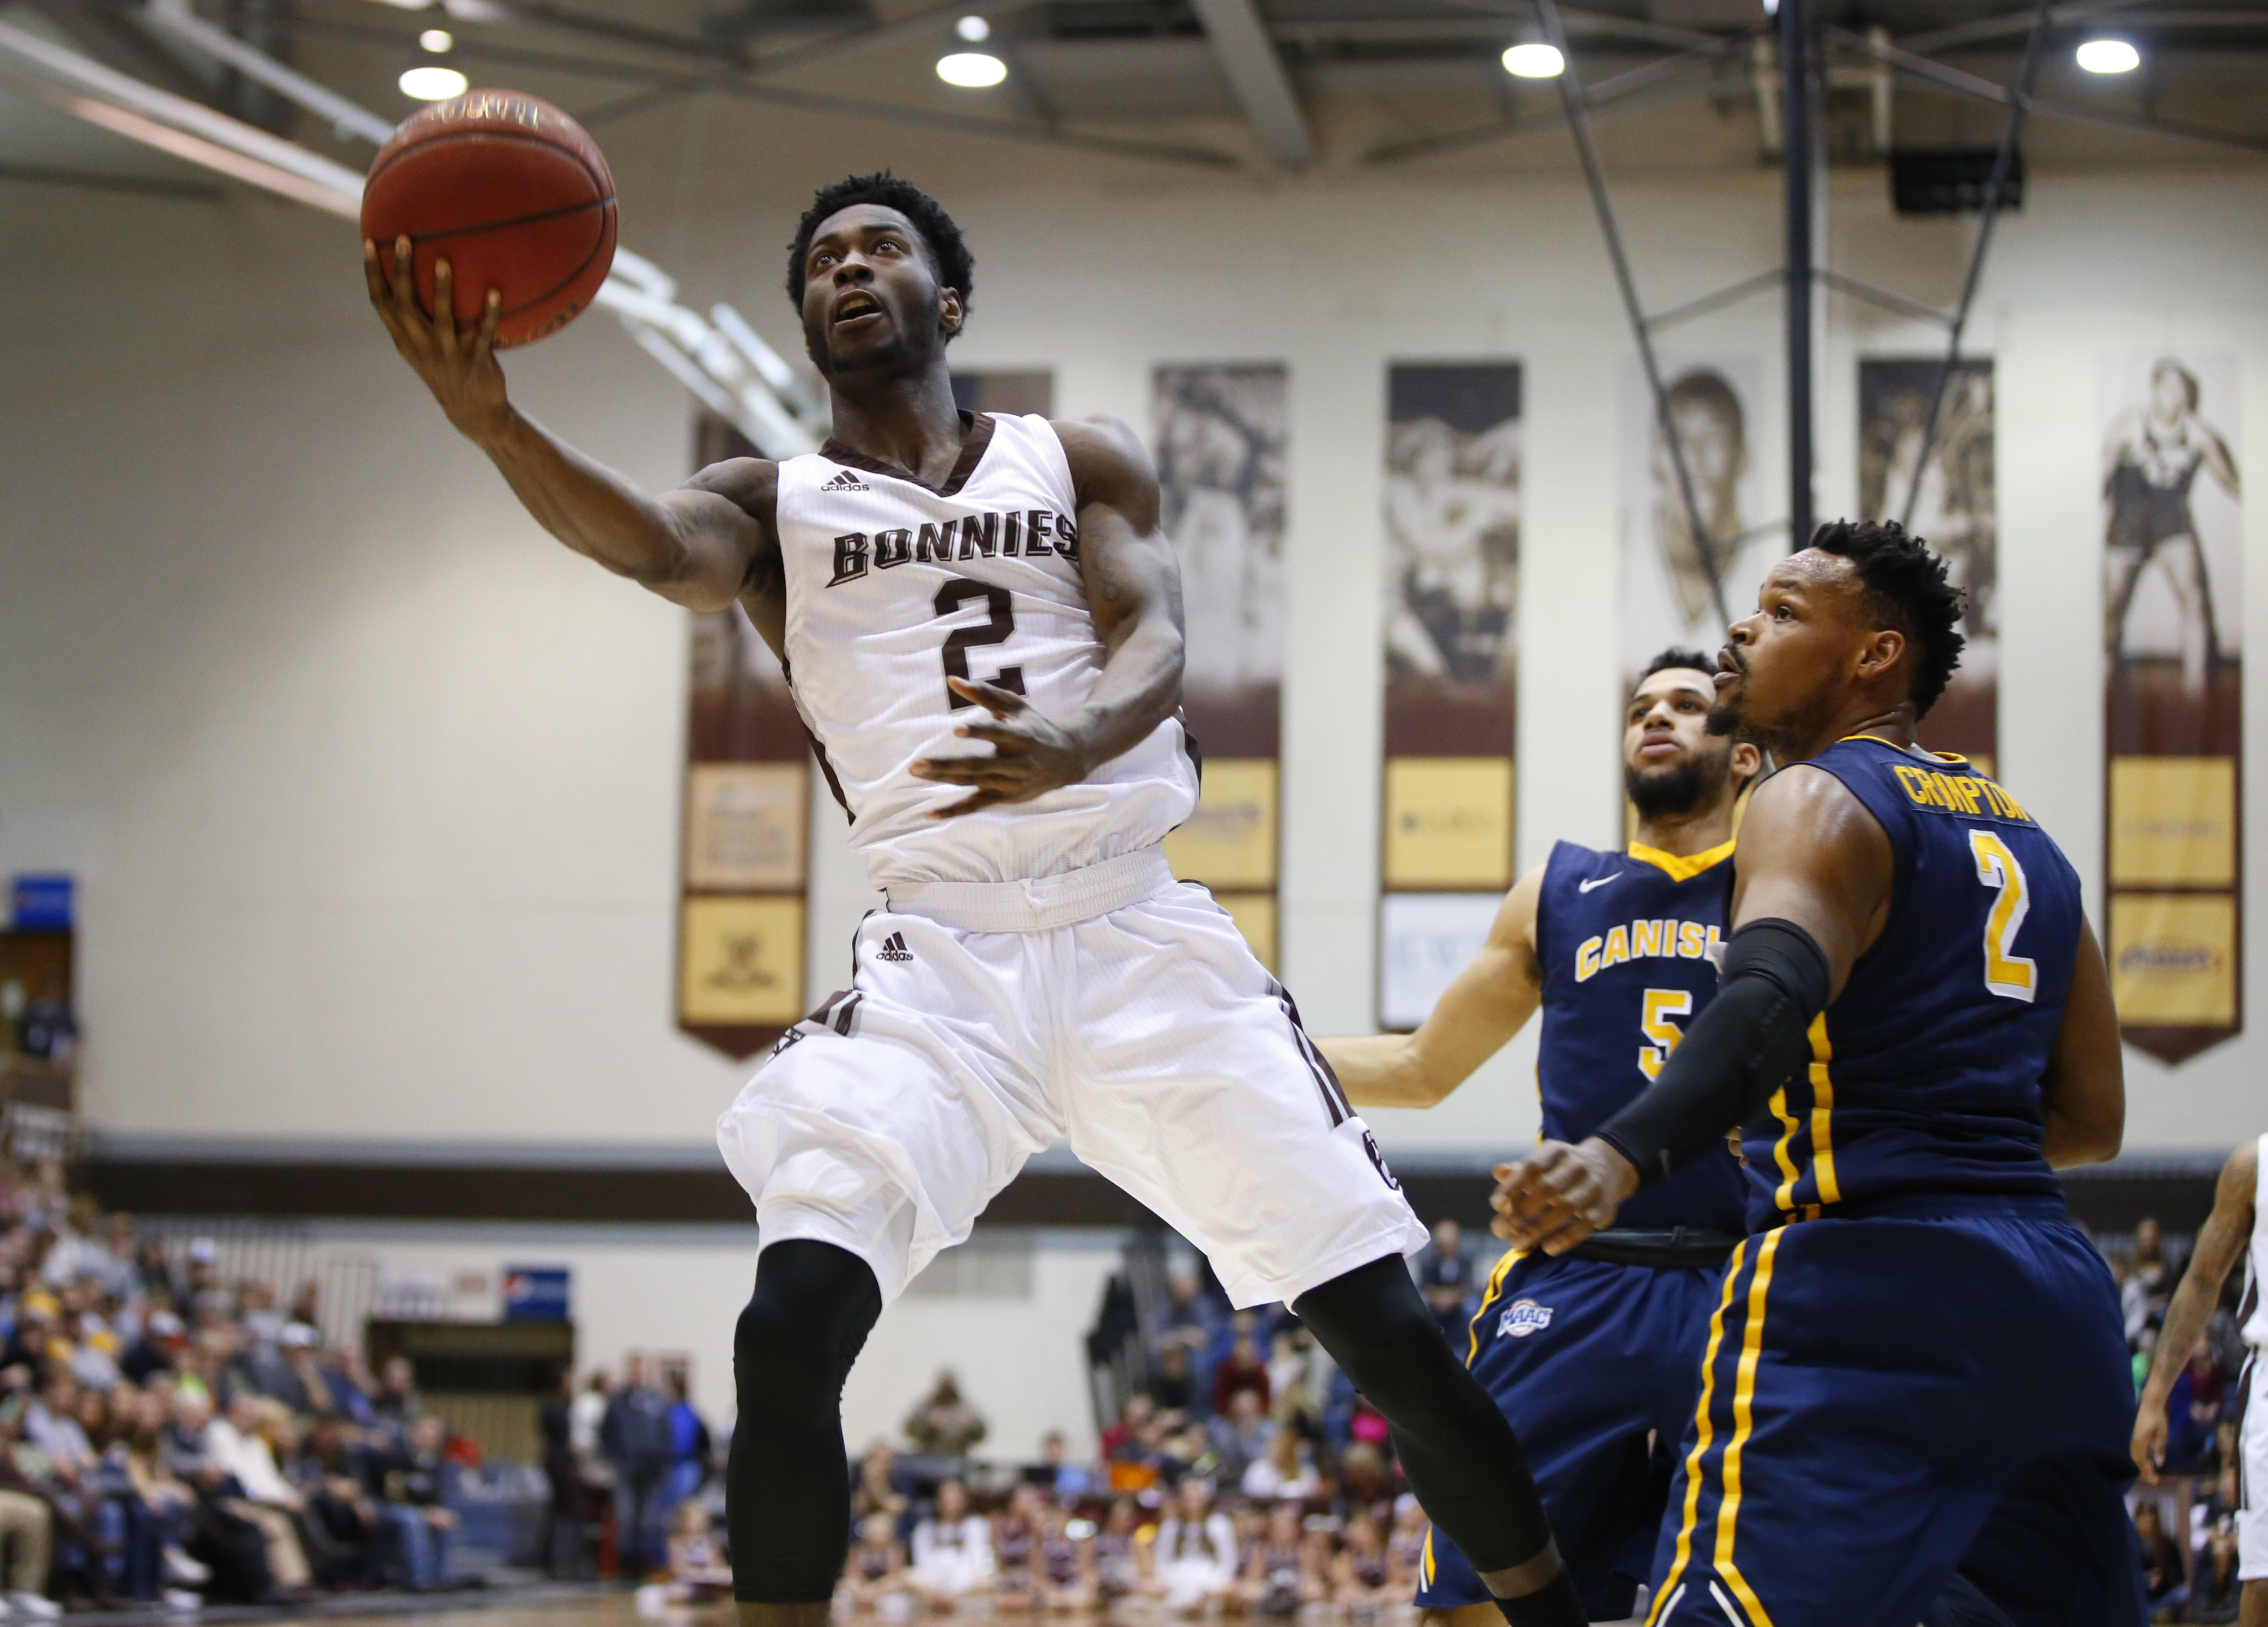 Canisius Jeraine Crumpton watches St. Bonaventure's Matt Mobley drive to the basket during second half action at the Reilly Center on Thursday, Dec. 22, 2016. (Harry Scull Jr./Buffalo News)